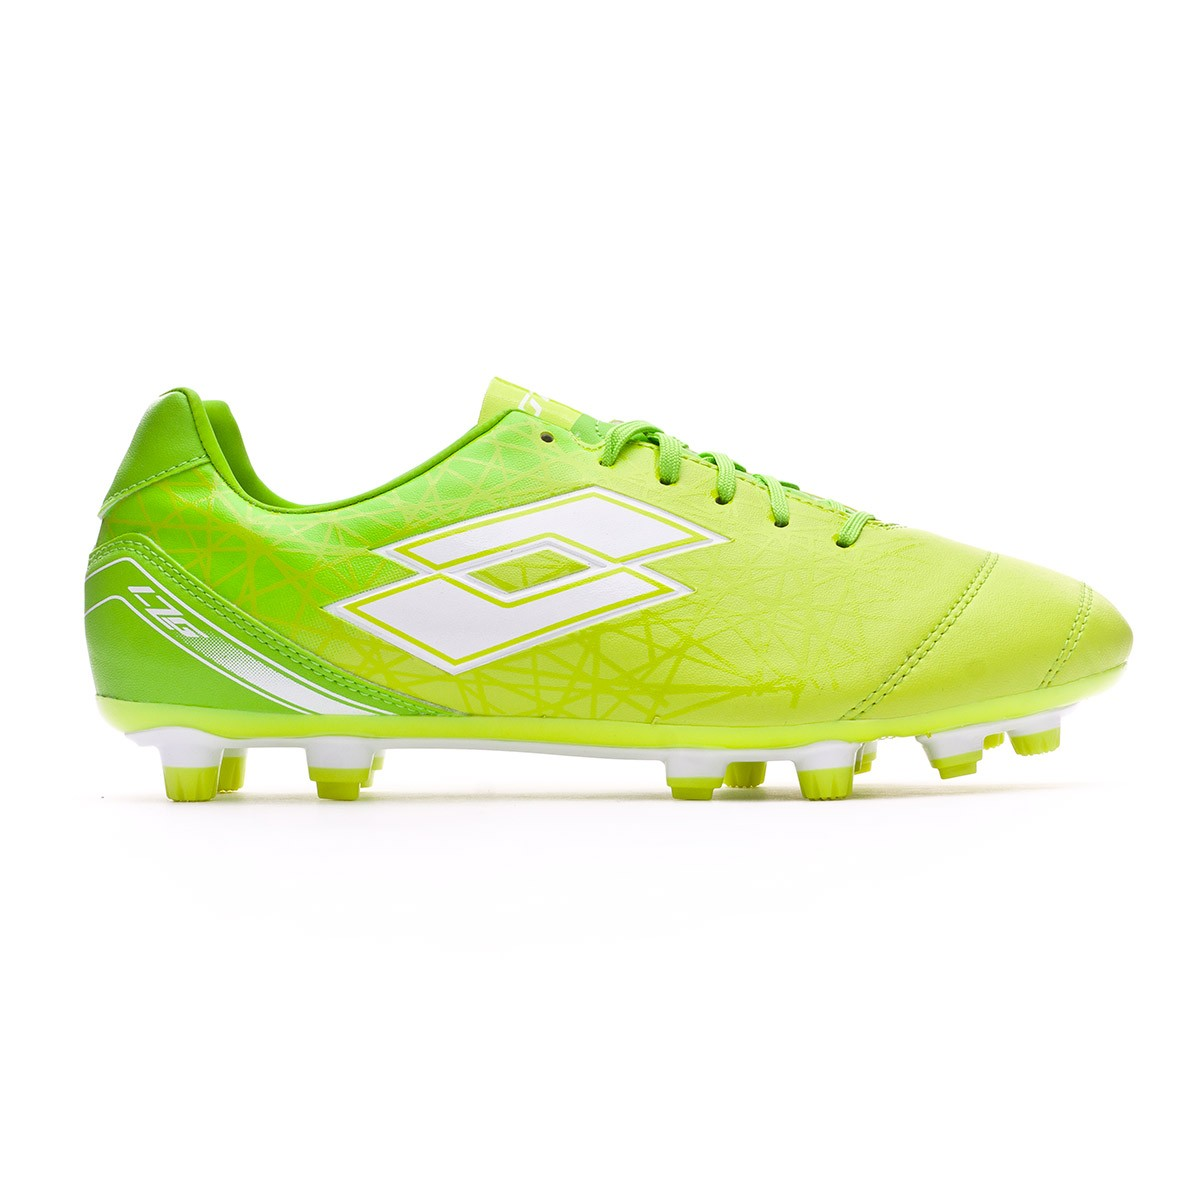 new style d7249 bd018 Football Boots Lotto Zhero Gravity 700 X FG Green-White - Tienda de fútbol  Fútbol Emotion